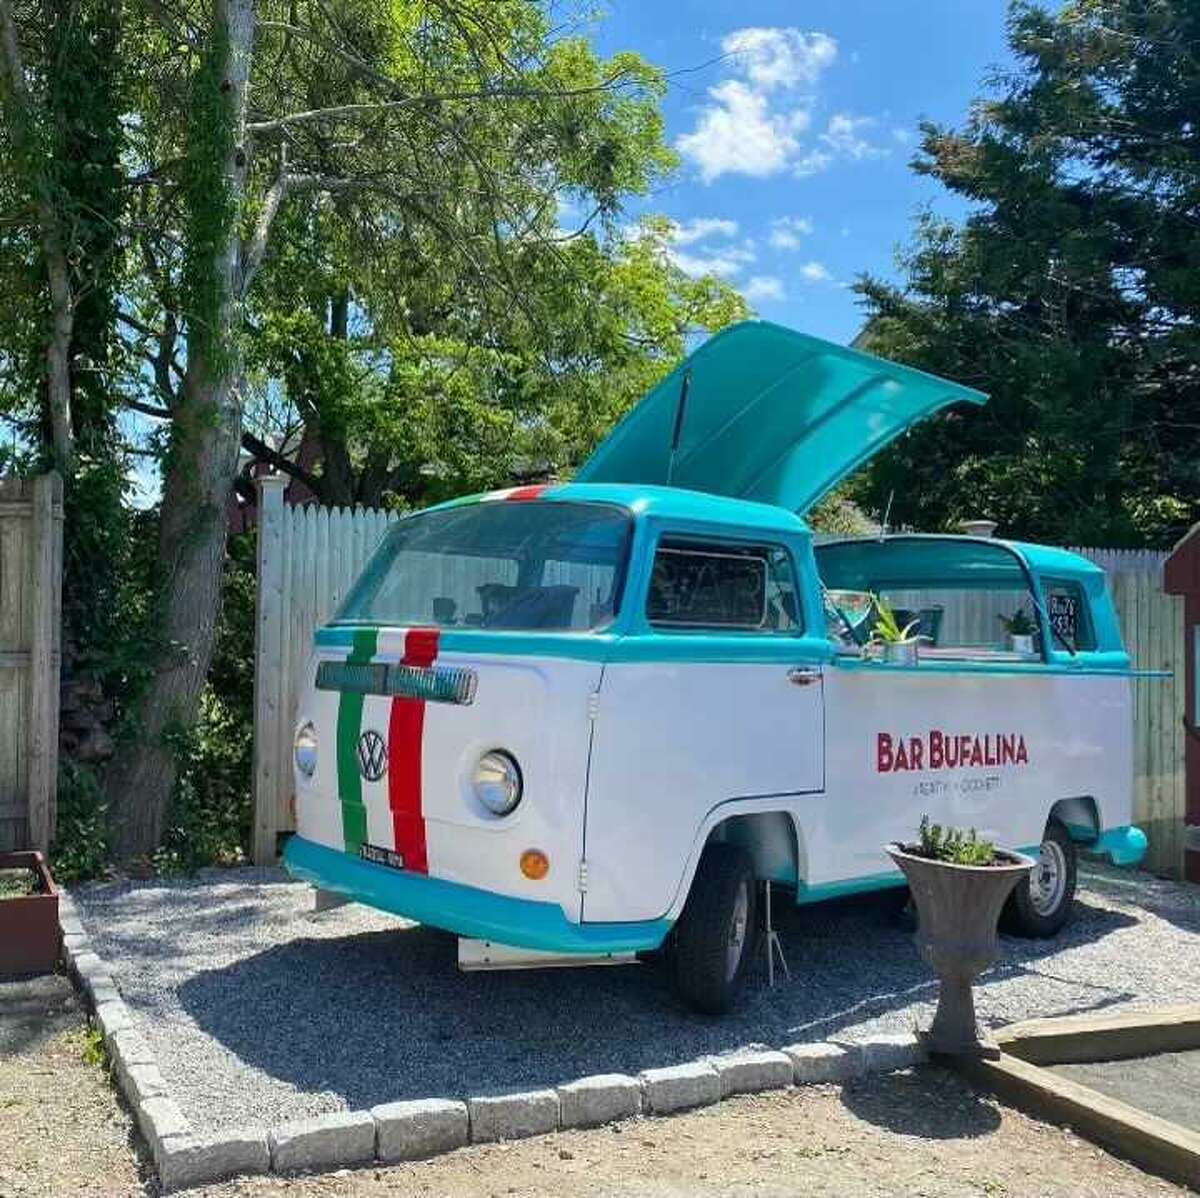 Bufalina's new outdoor bar is a converted VW Bus, with space for cocktail and food prep.